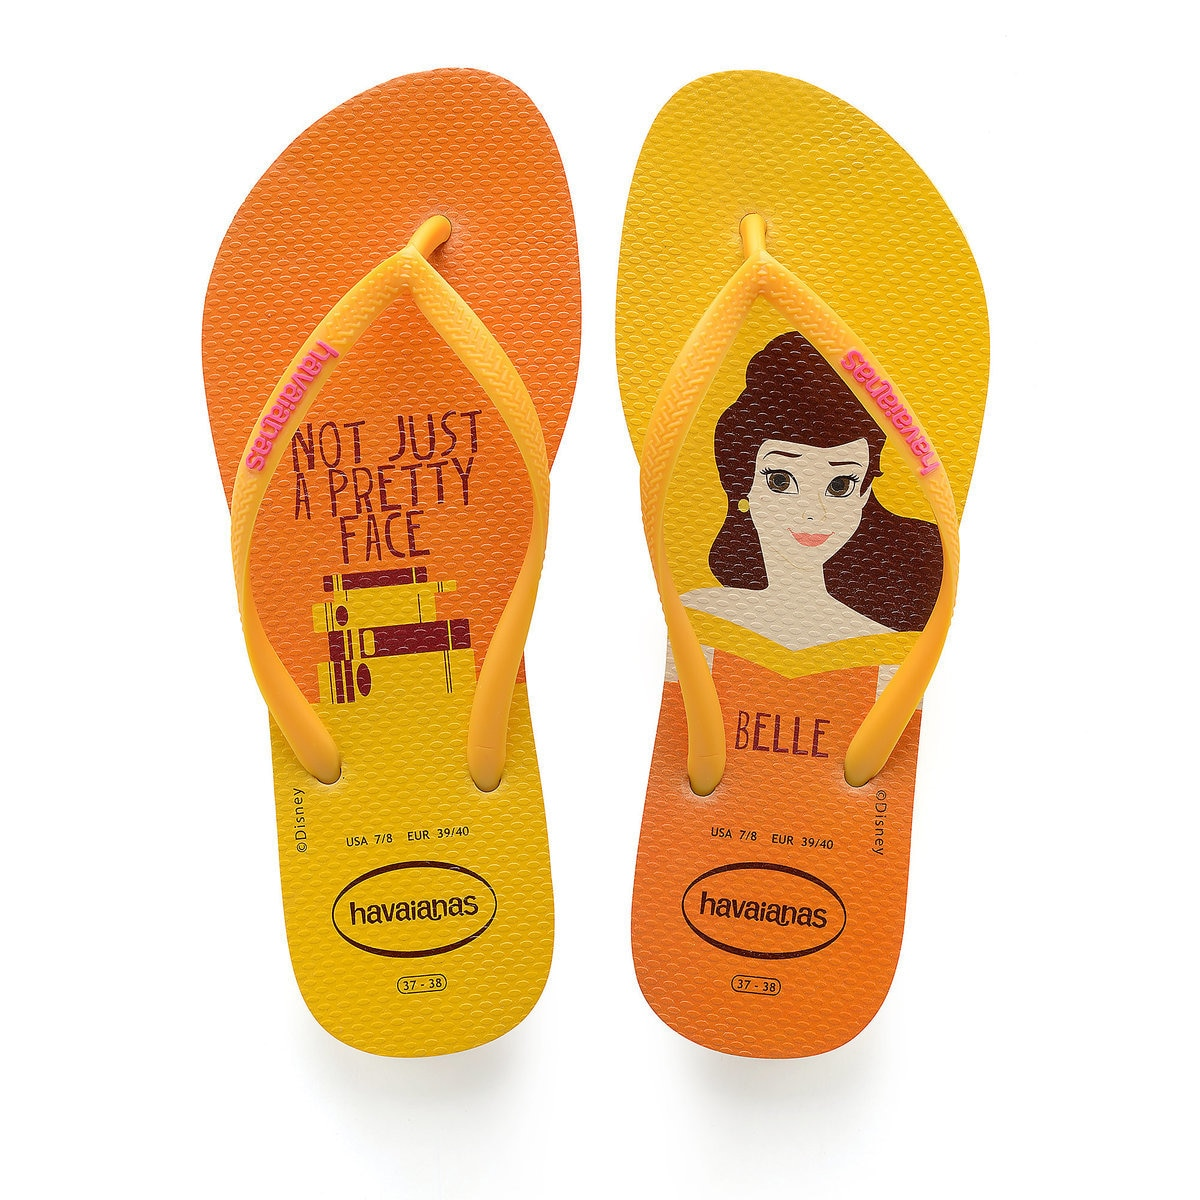 9c3a9402a Product Image of Belle Flip Flops for Women by Havaianas   2